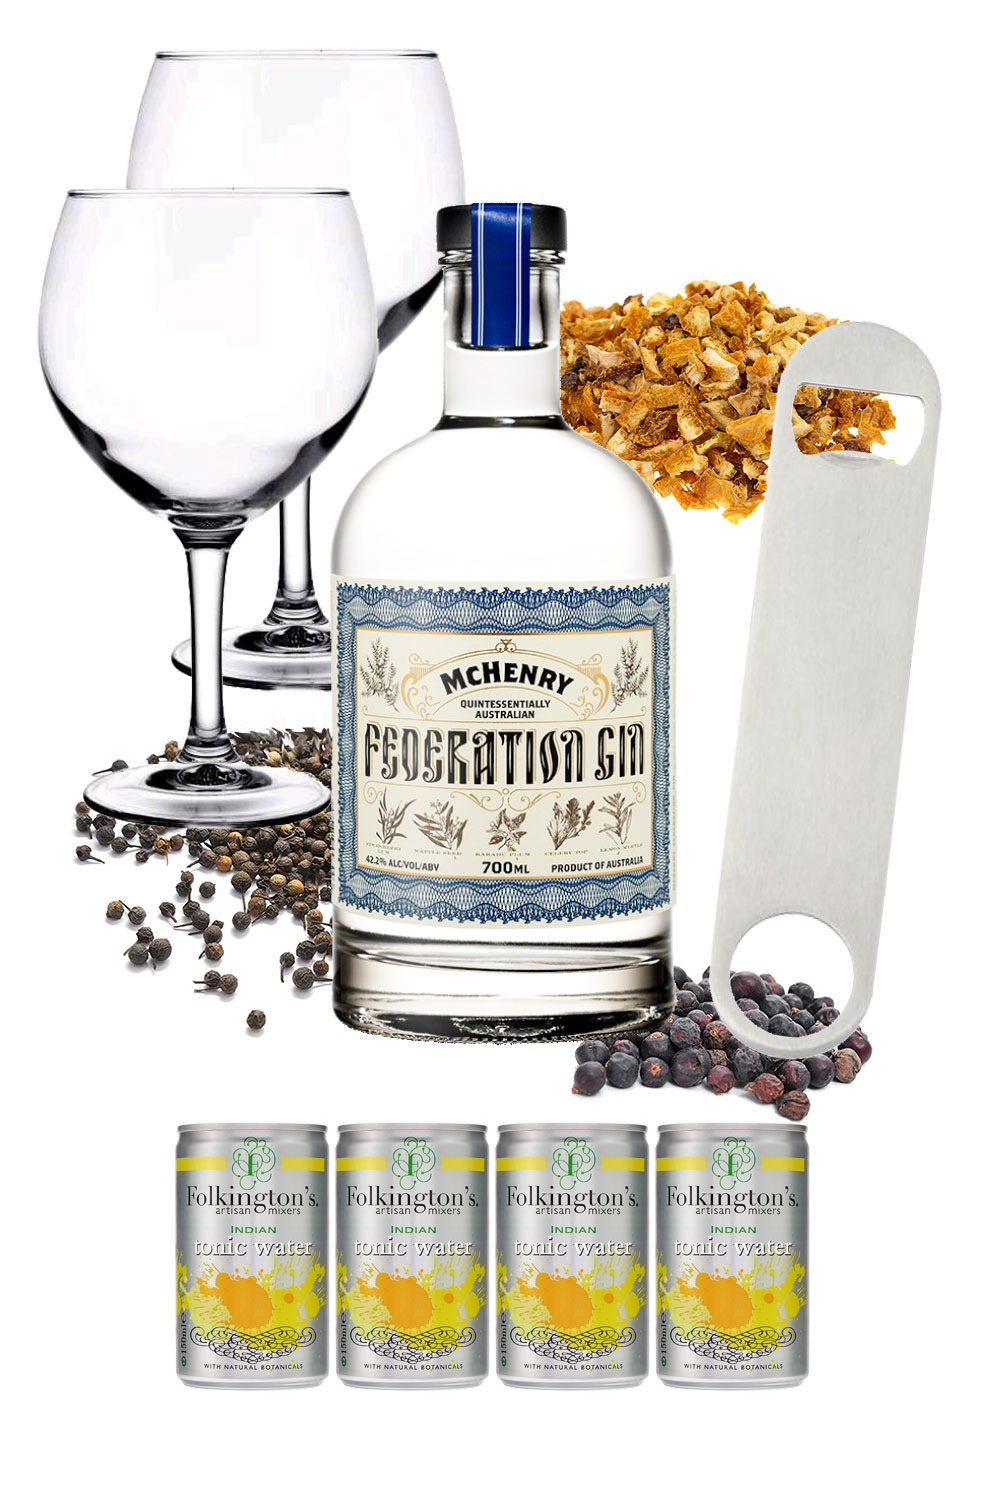 Federation Gin – Mission Ginpossible